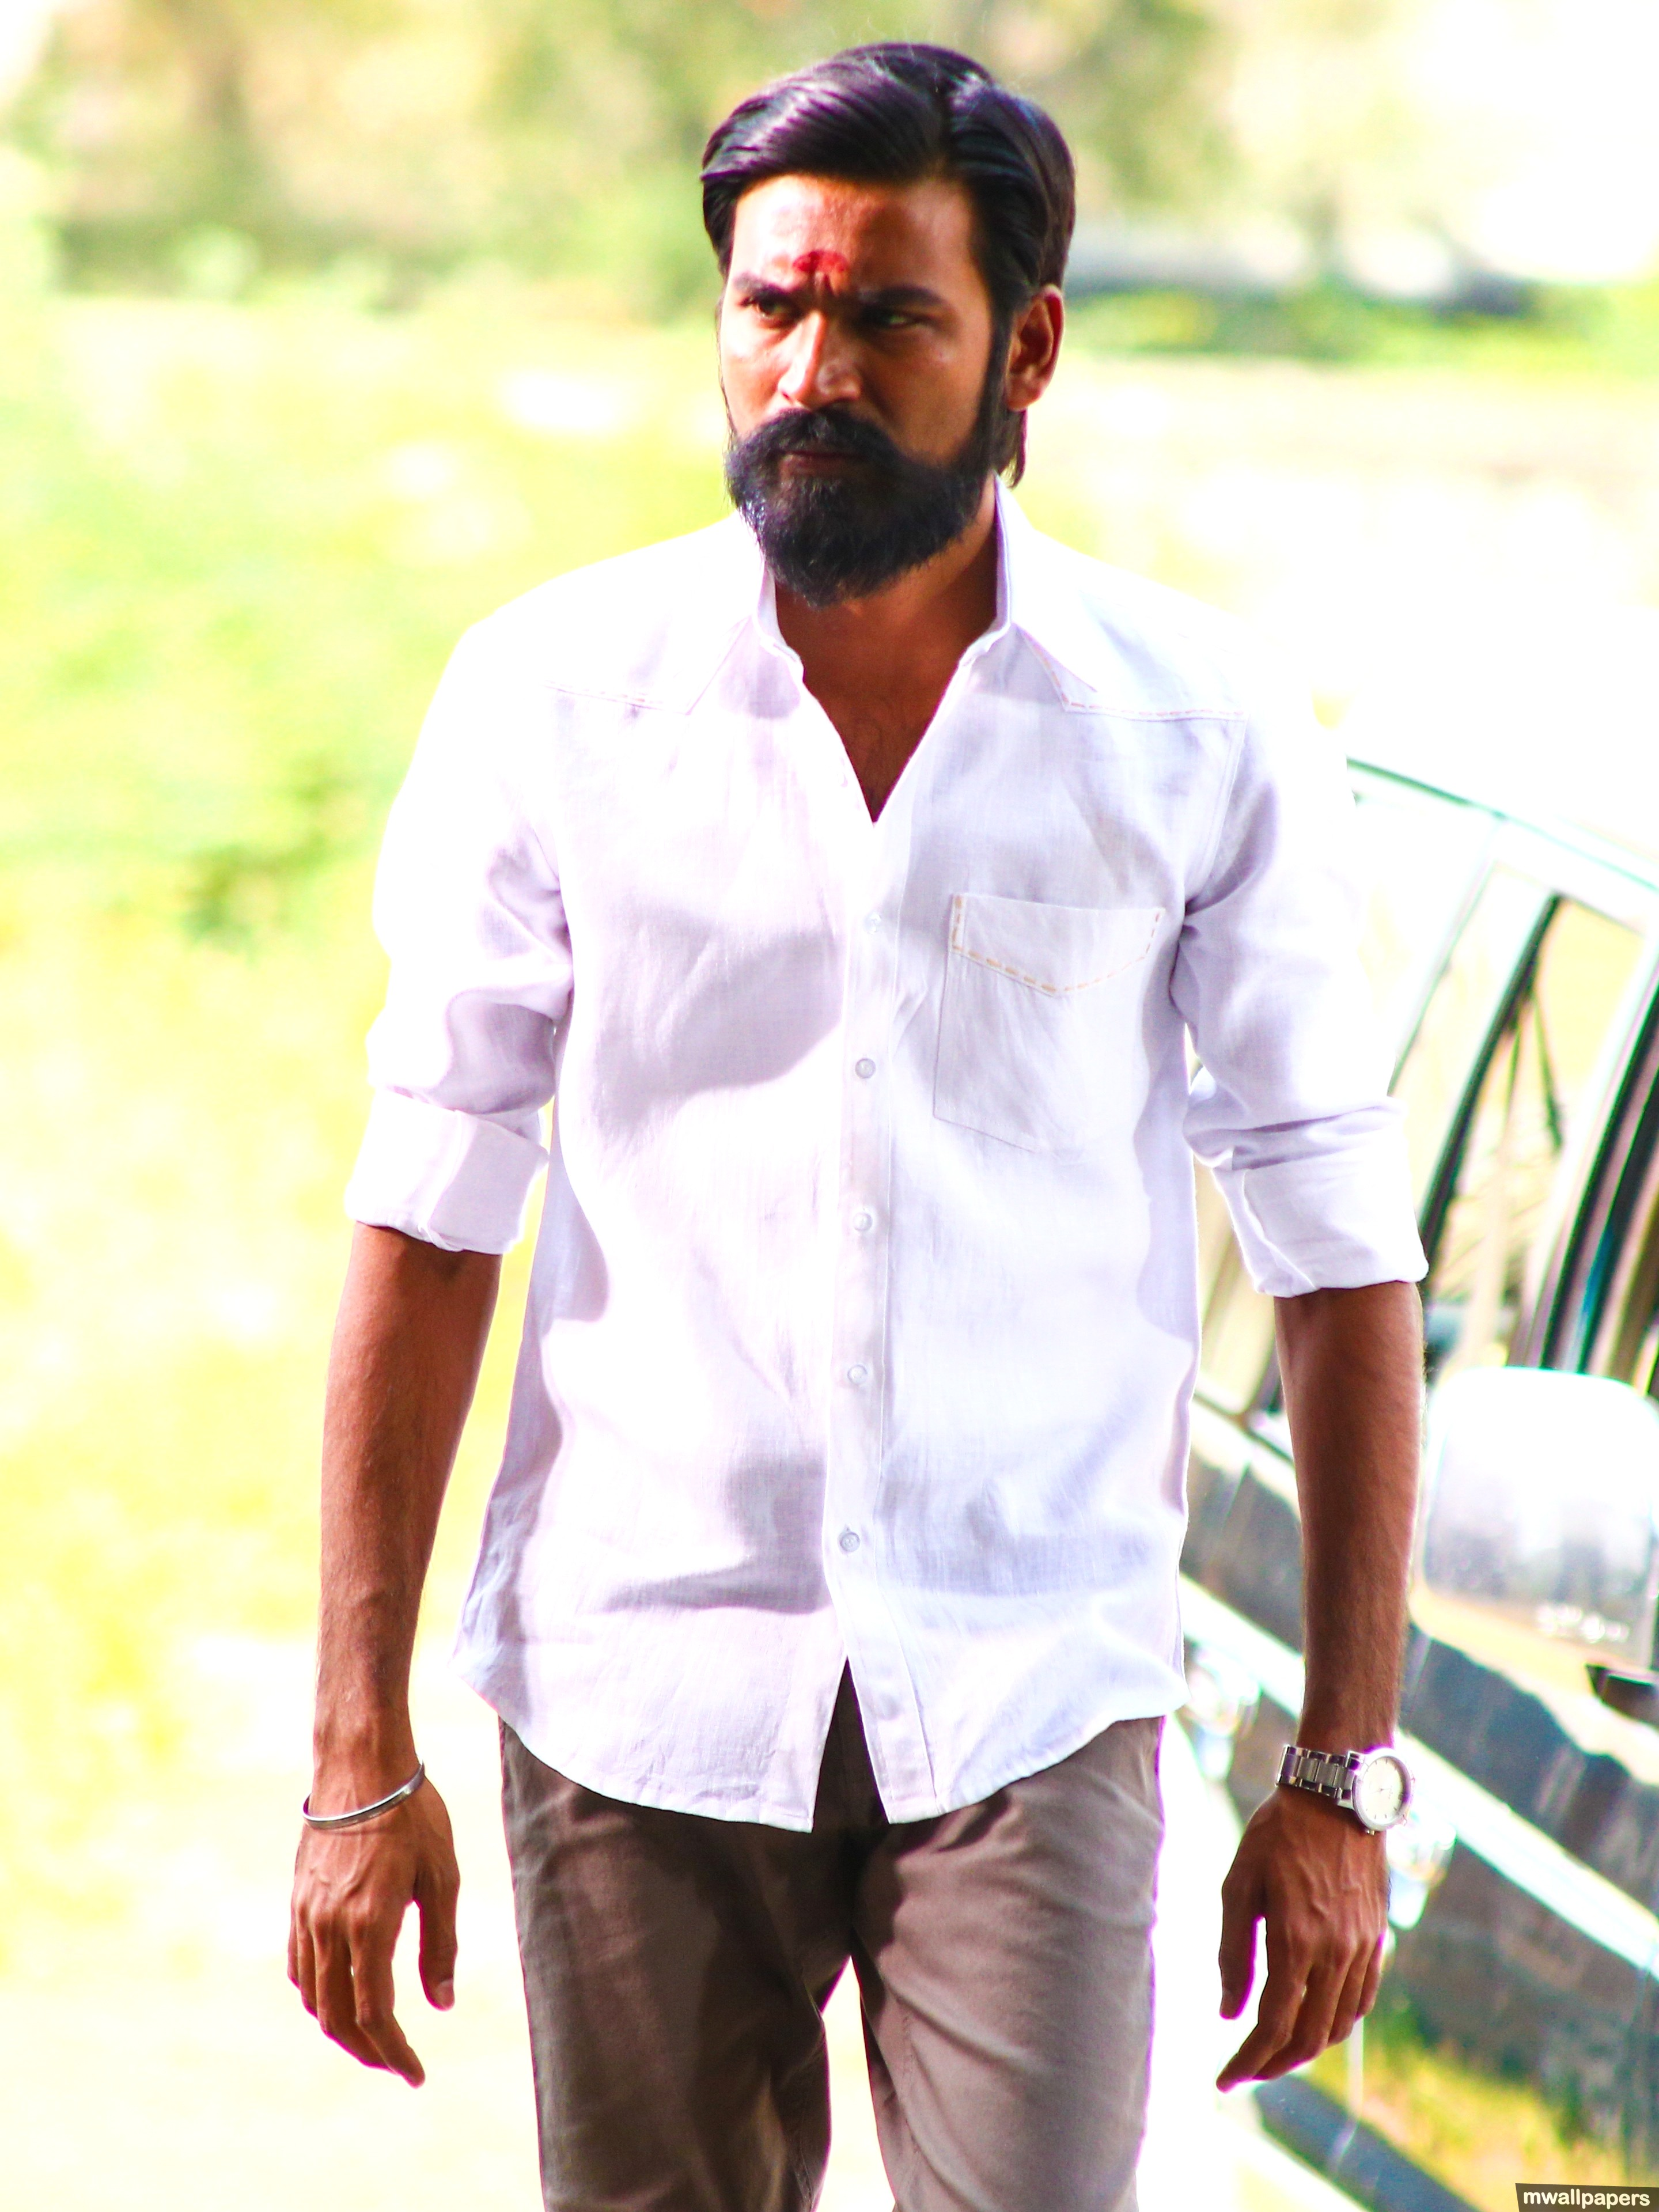 🌟 dhanush hd images (1080p) [android/iphone/ipad hd wallpapers] 🌟